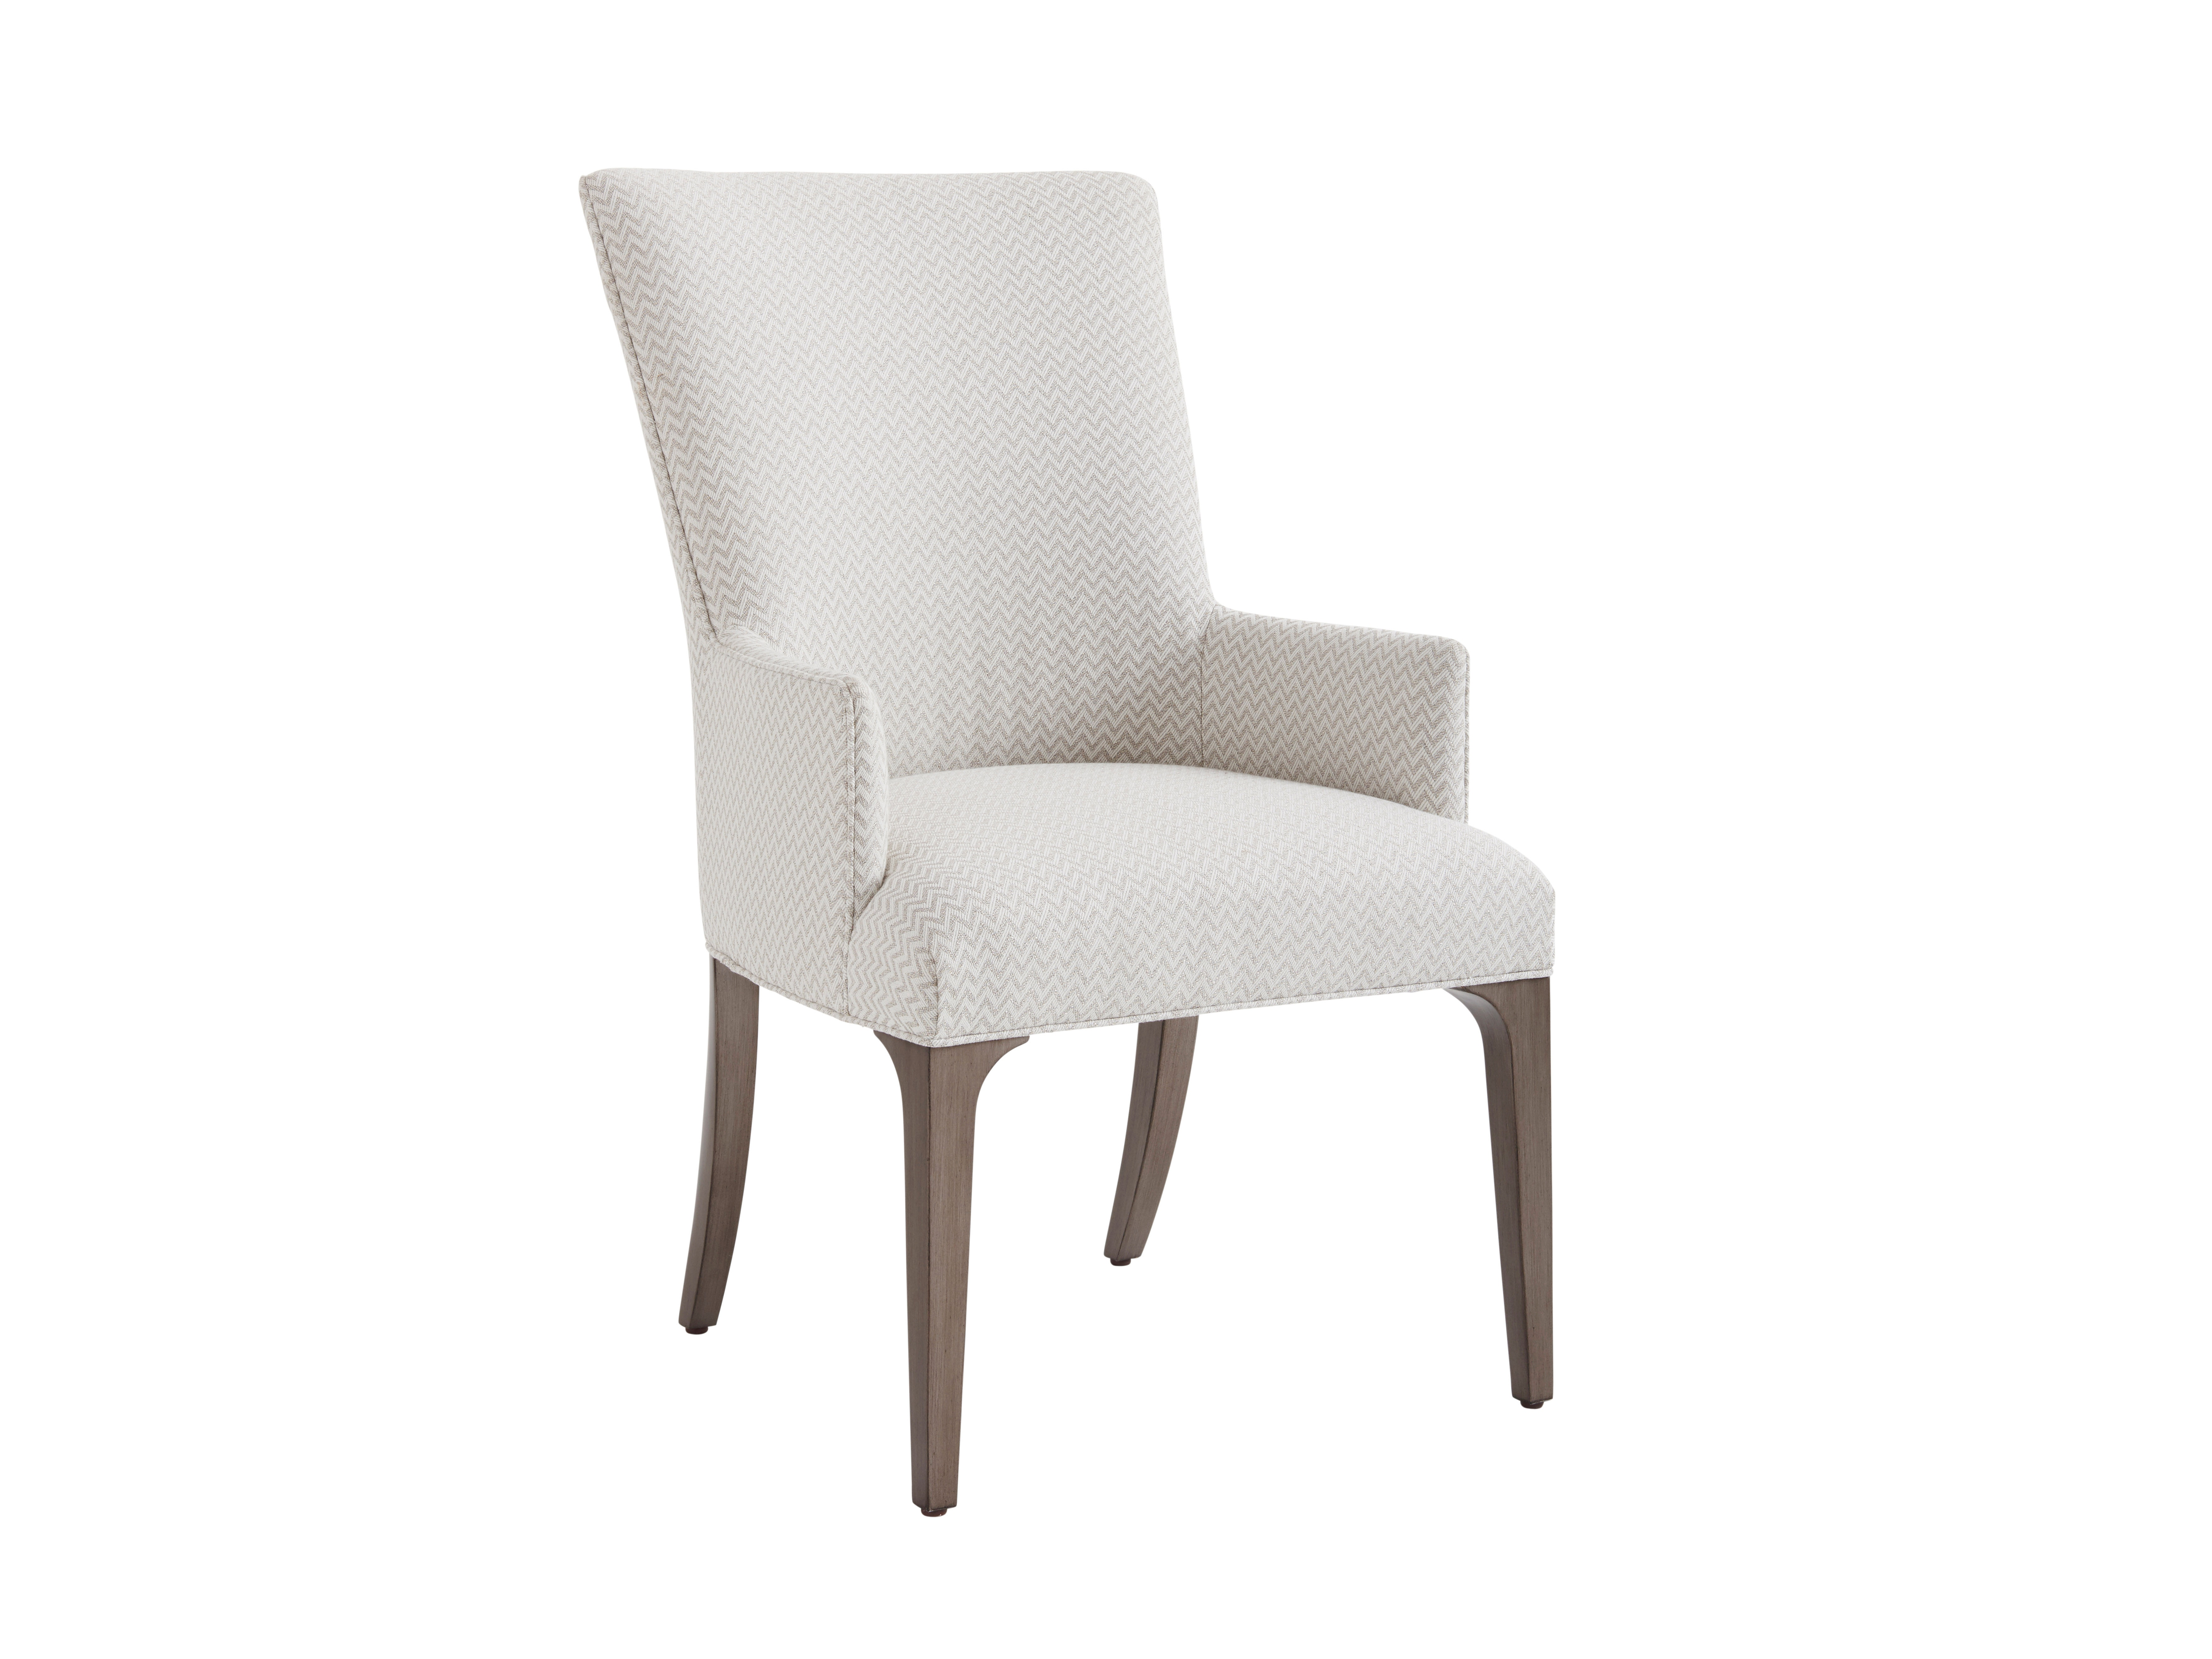 Beau Lexington Bellamy Upholstered Arm Chair 732 883 From Walter E. Smithe  Furniture + Design